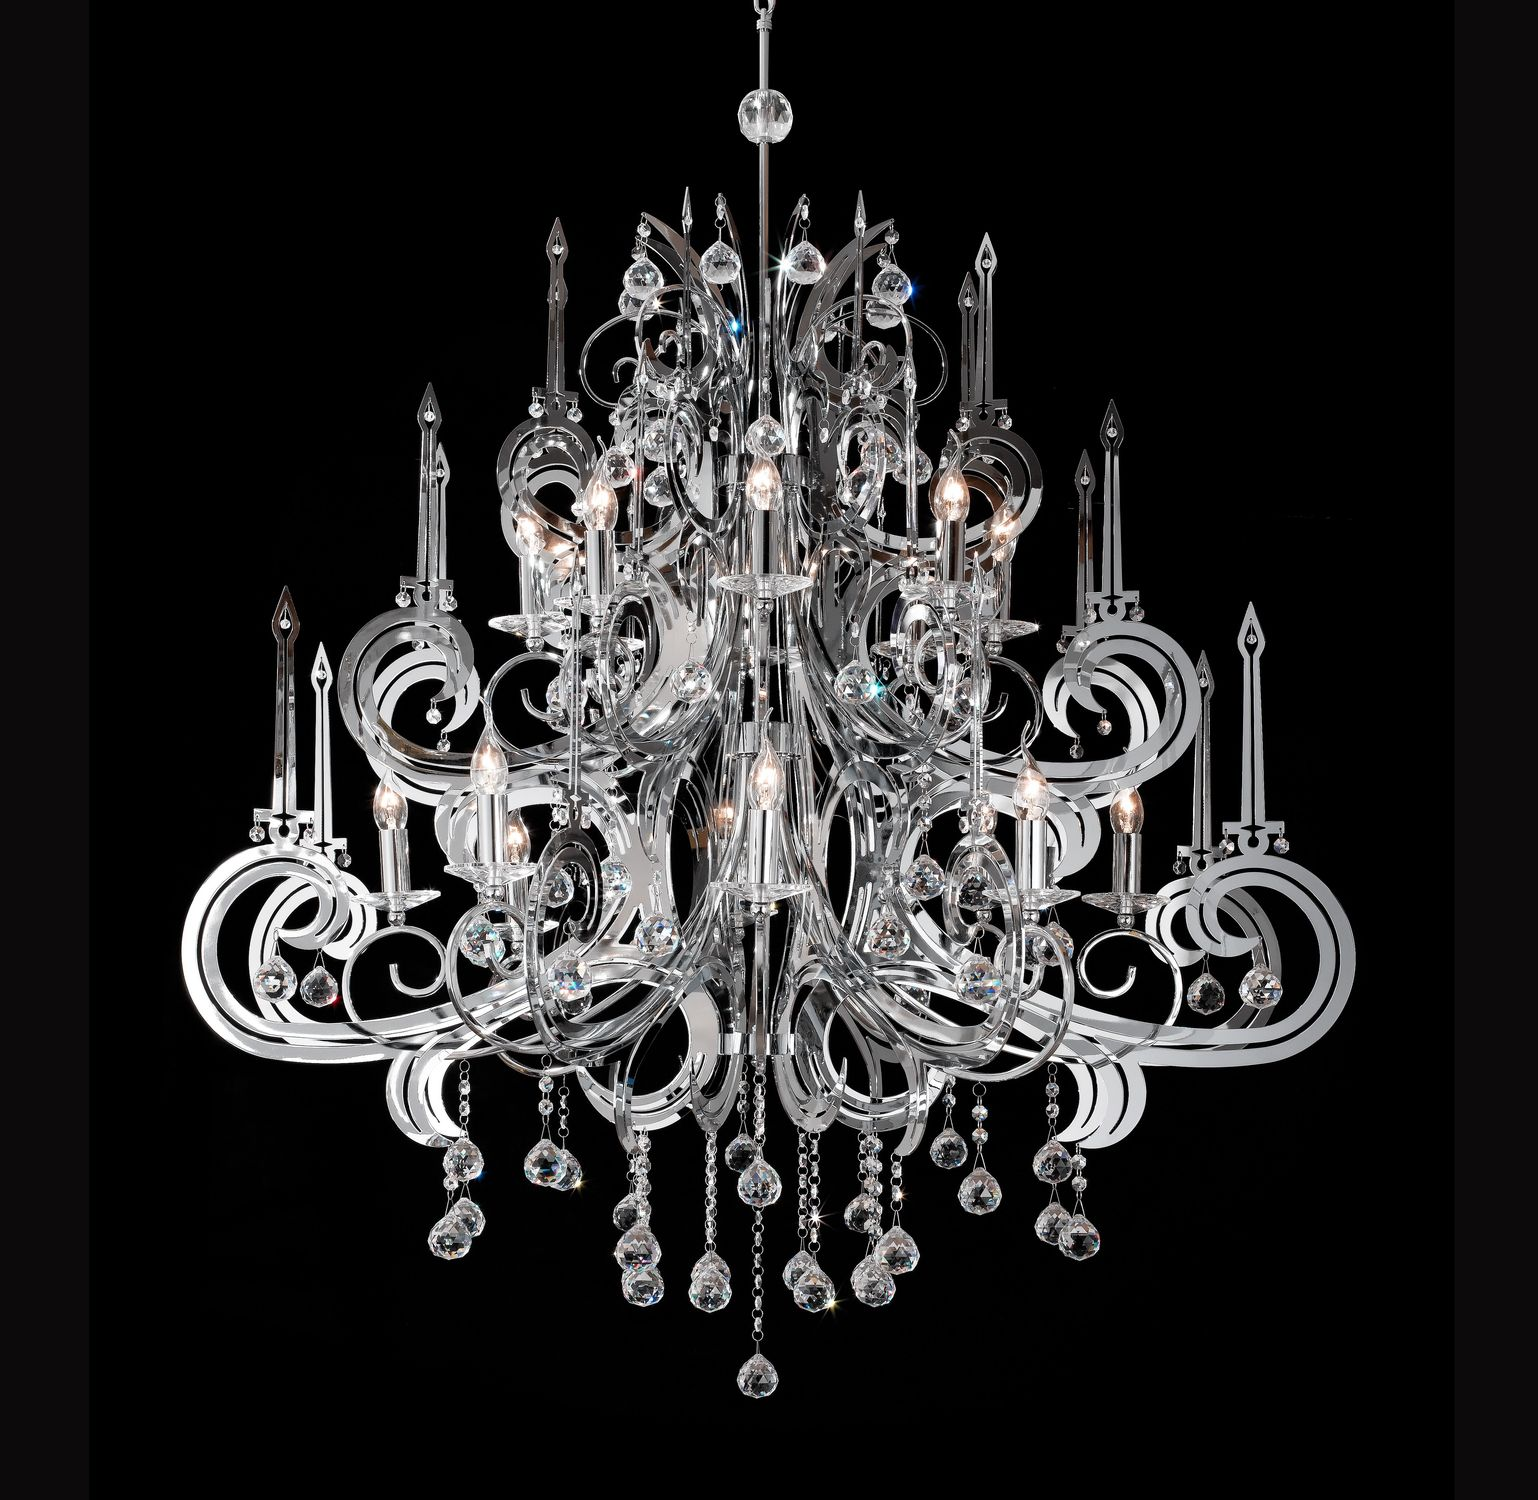 chandeliers for your home interior design paradise. Black Bedroom Furniture Sets. Home Design Ideas